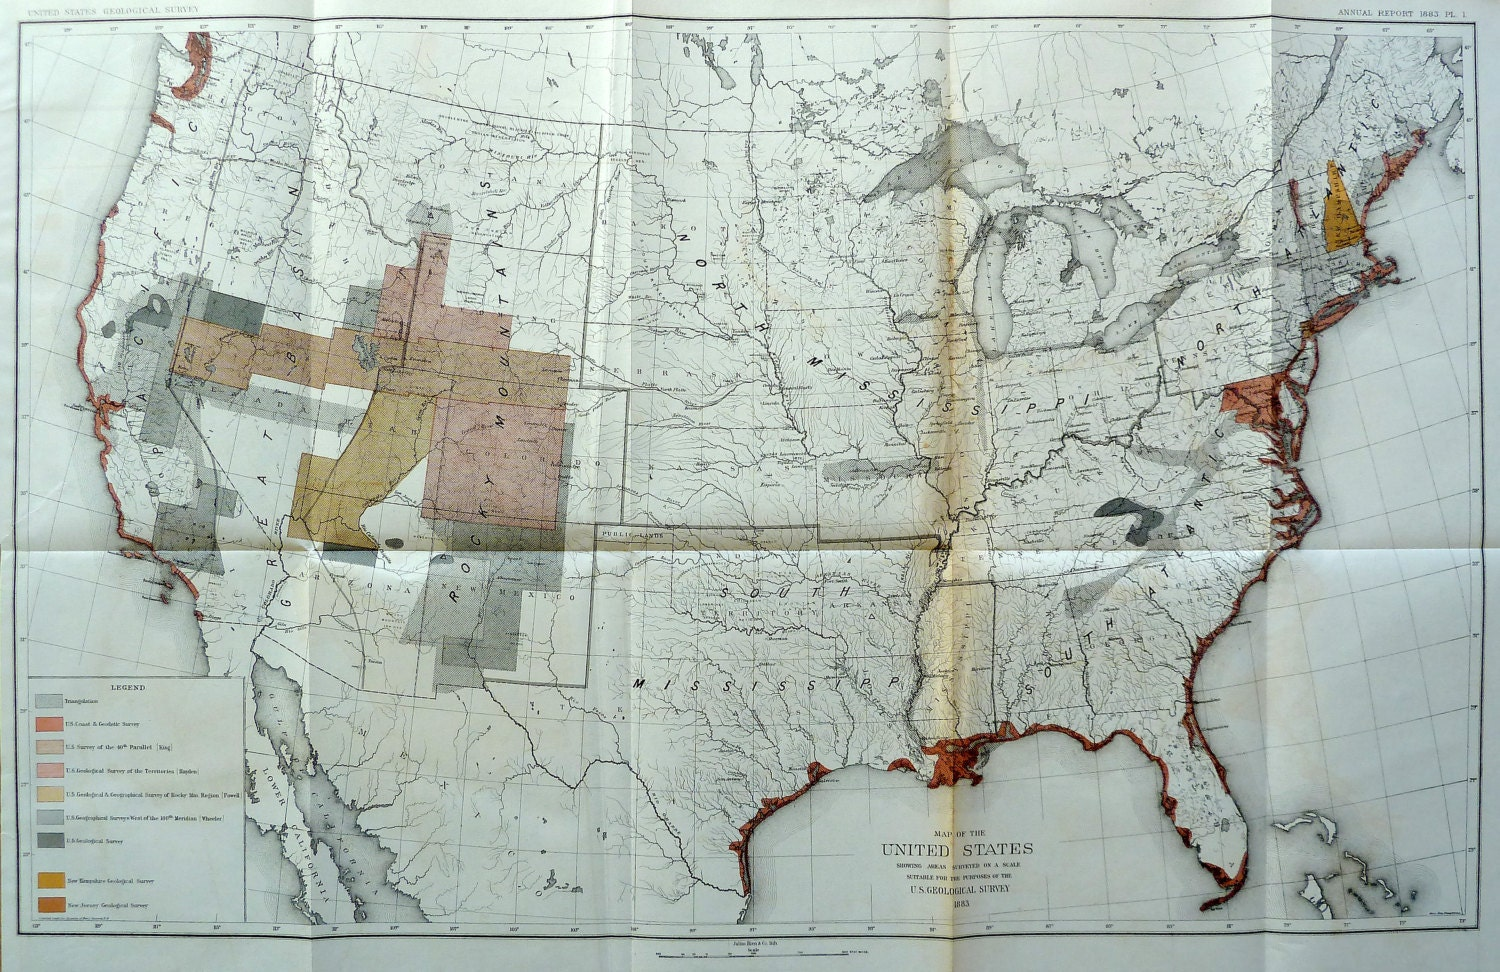 Geological Map of the United States 1883 | Etsy